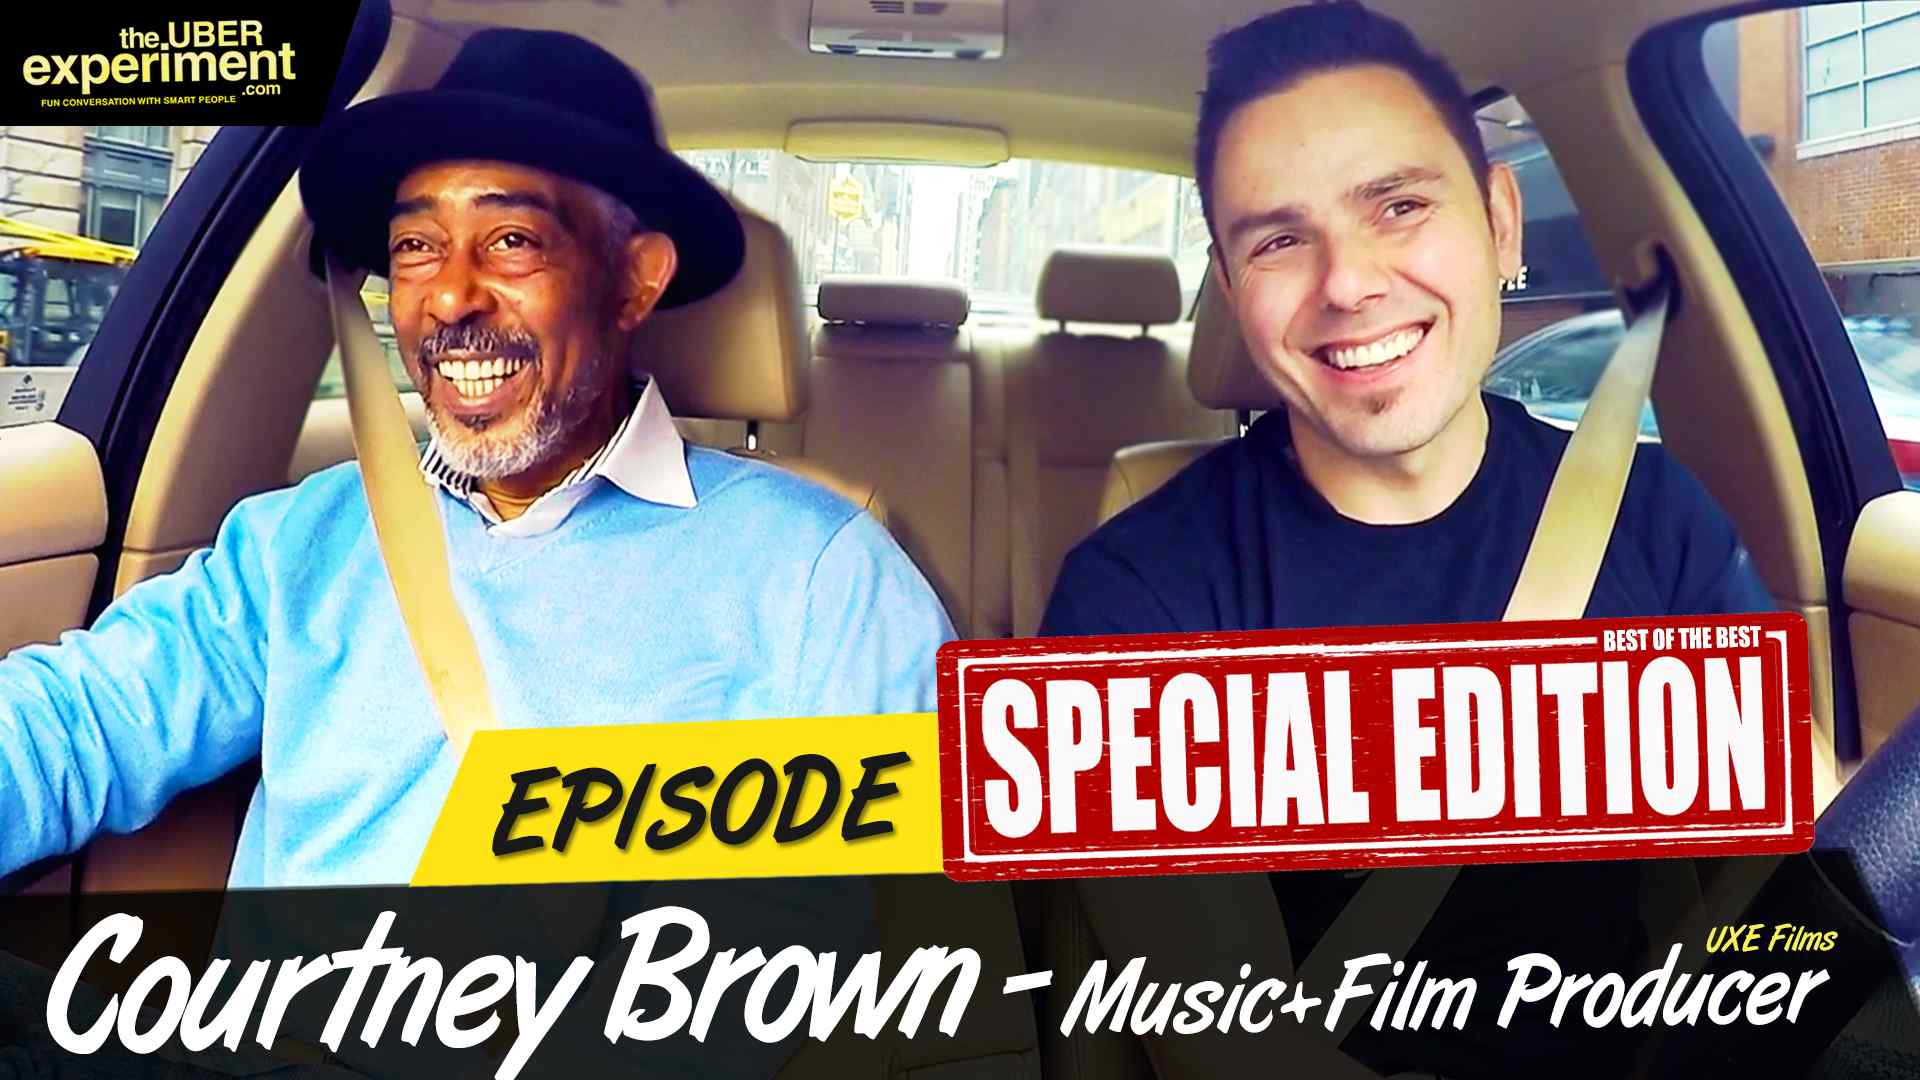 Music & Film Producer COURTNEY BROWN on The UBER Experiment Reality Talk Show - SPECIAL EDITION